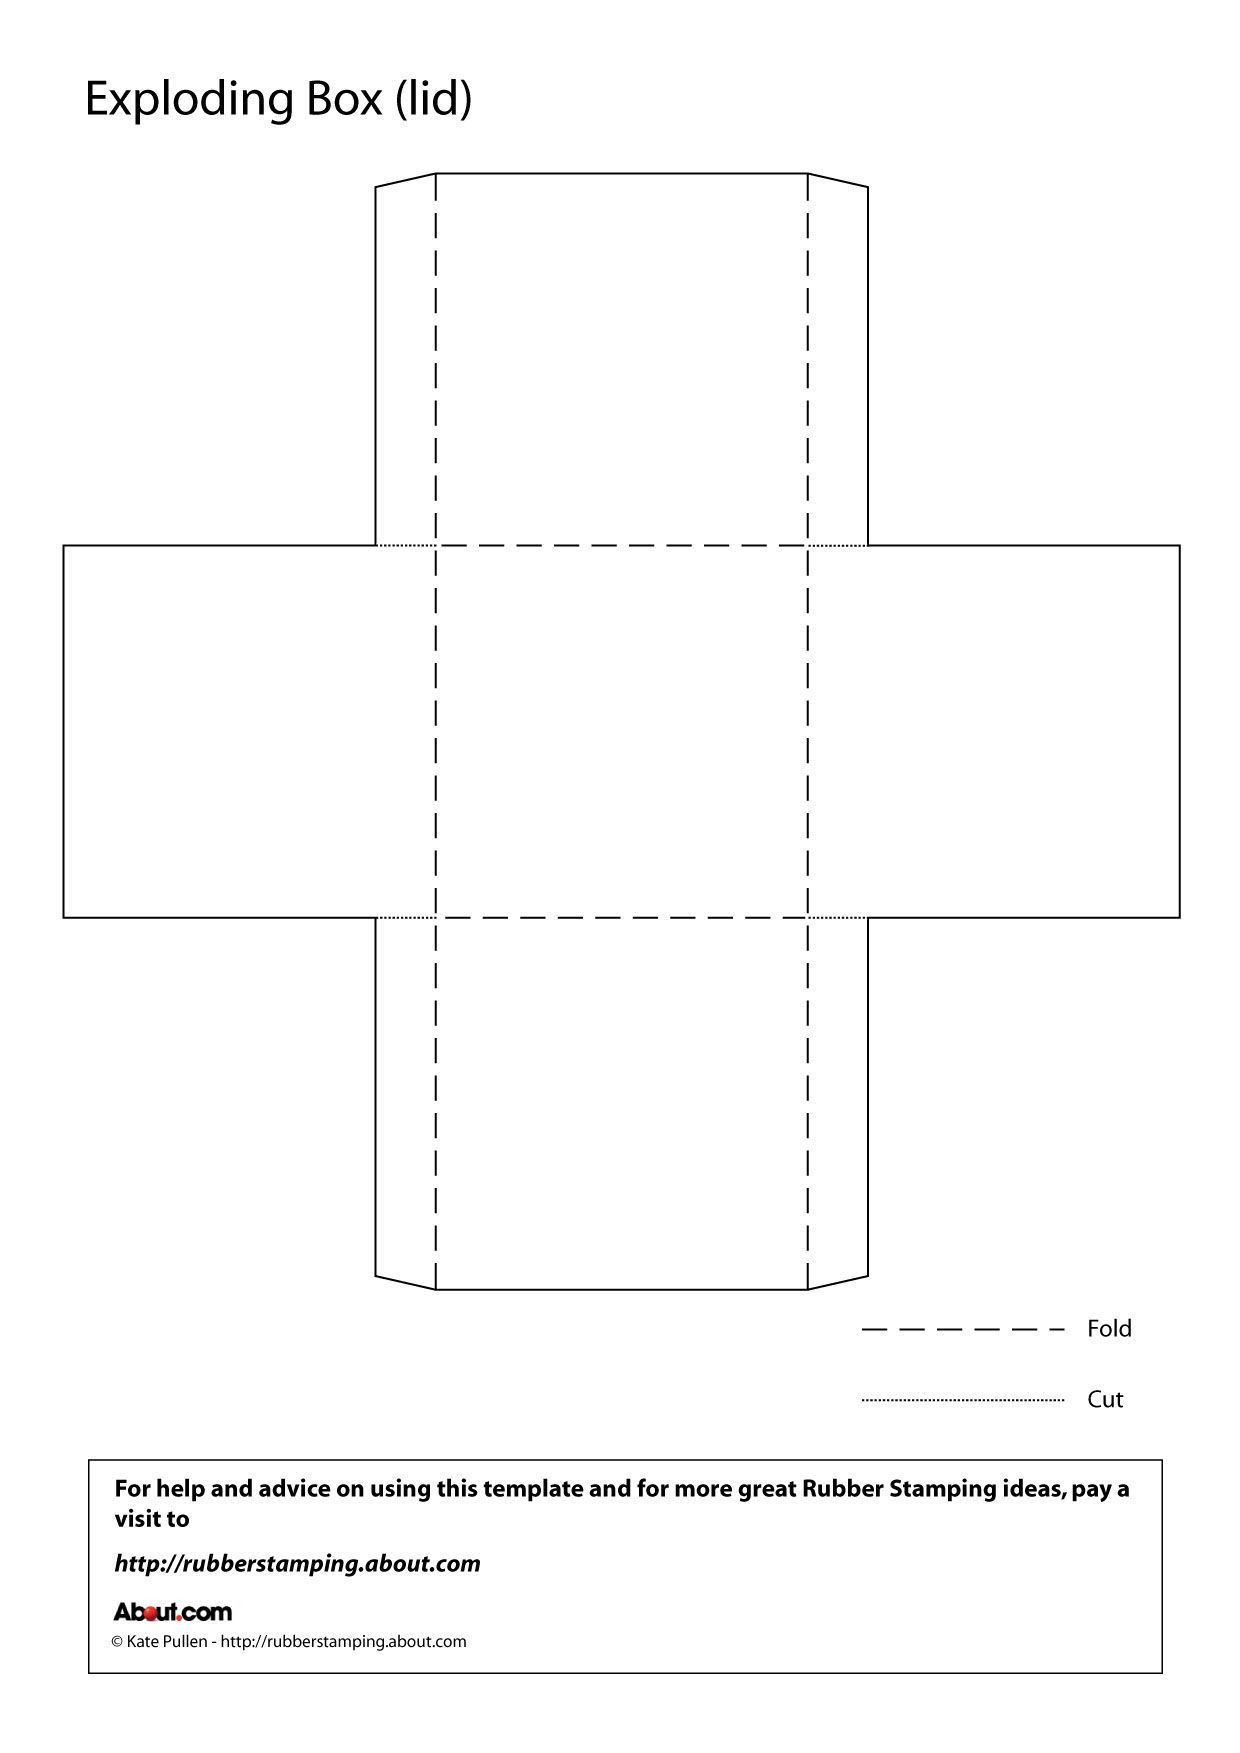 Make An Exploding Box With This Free Printable Template Inside Card Box Template Generator Fugozinsurance In 2020 Box Template Exploding Boxes Exploding Box Template